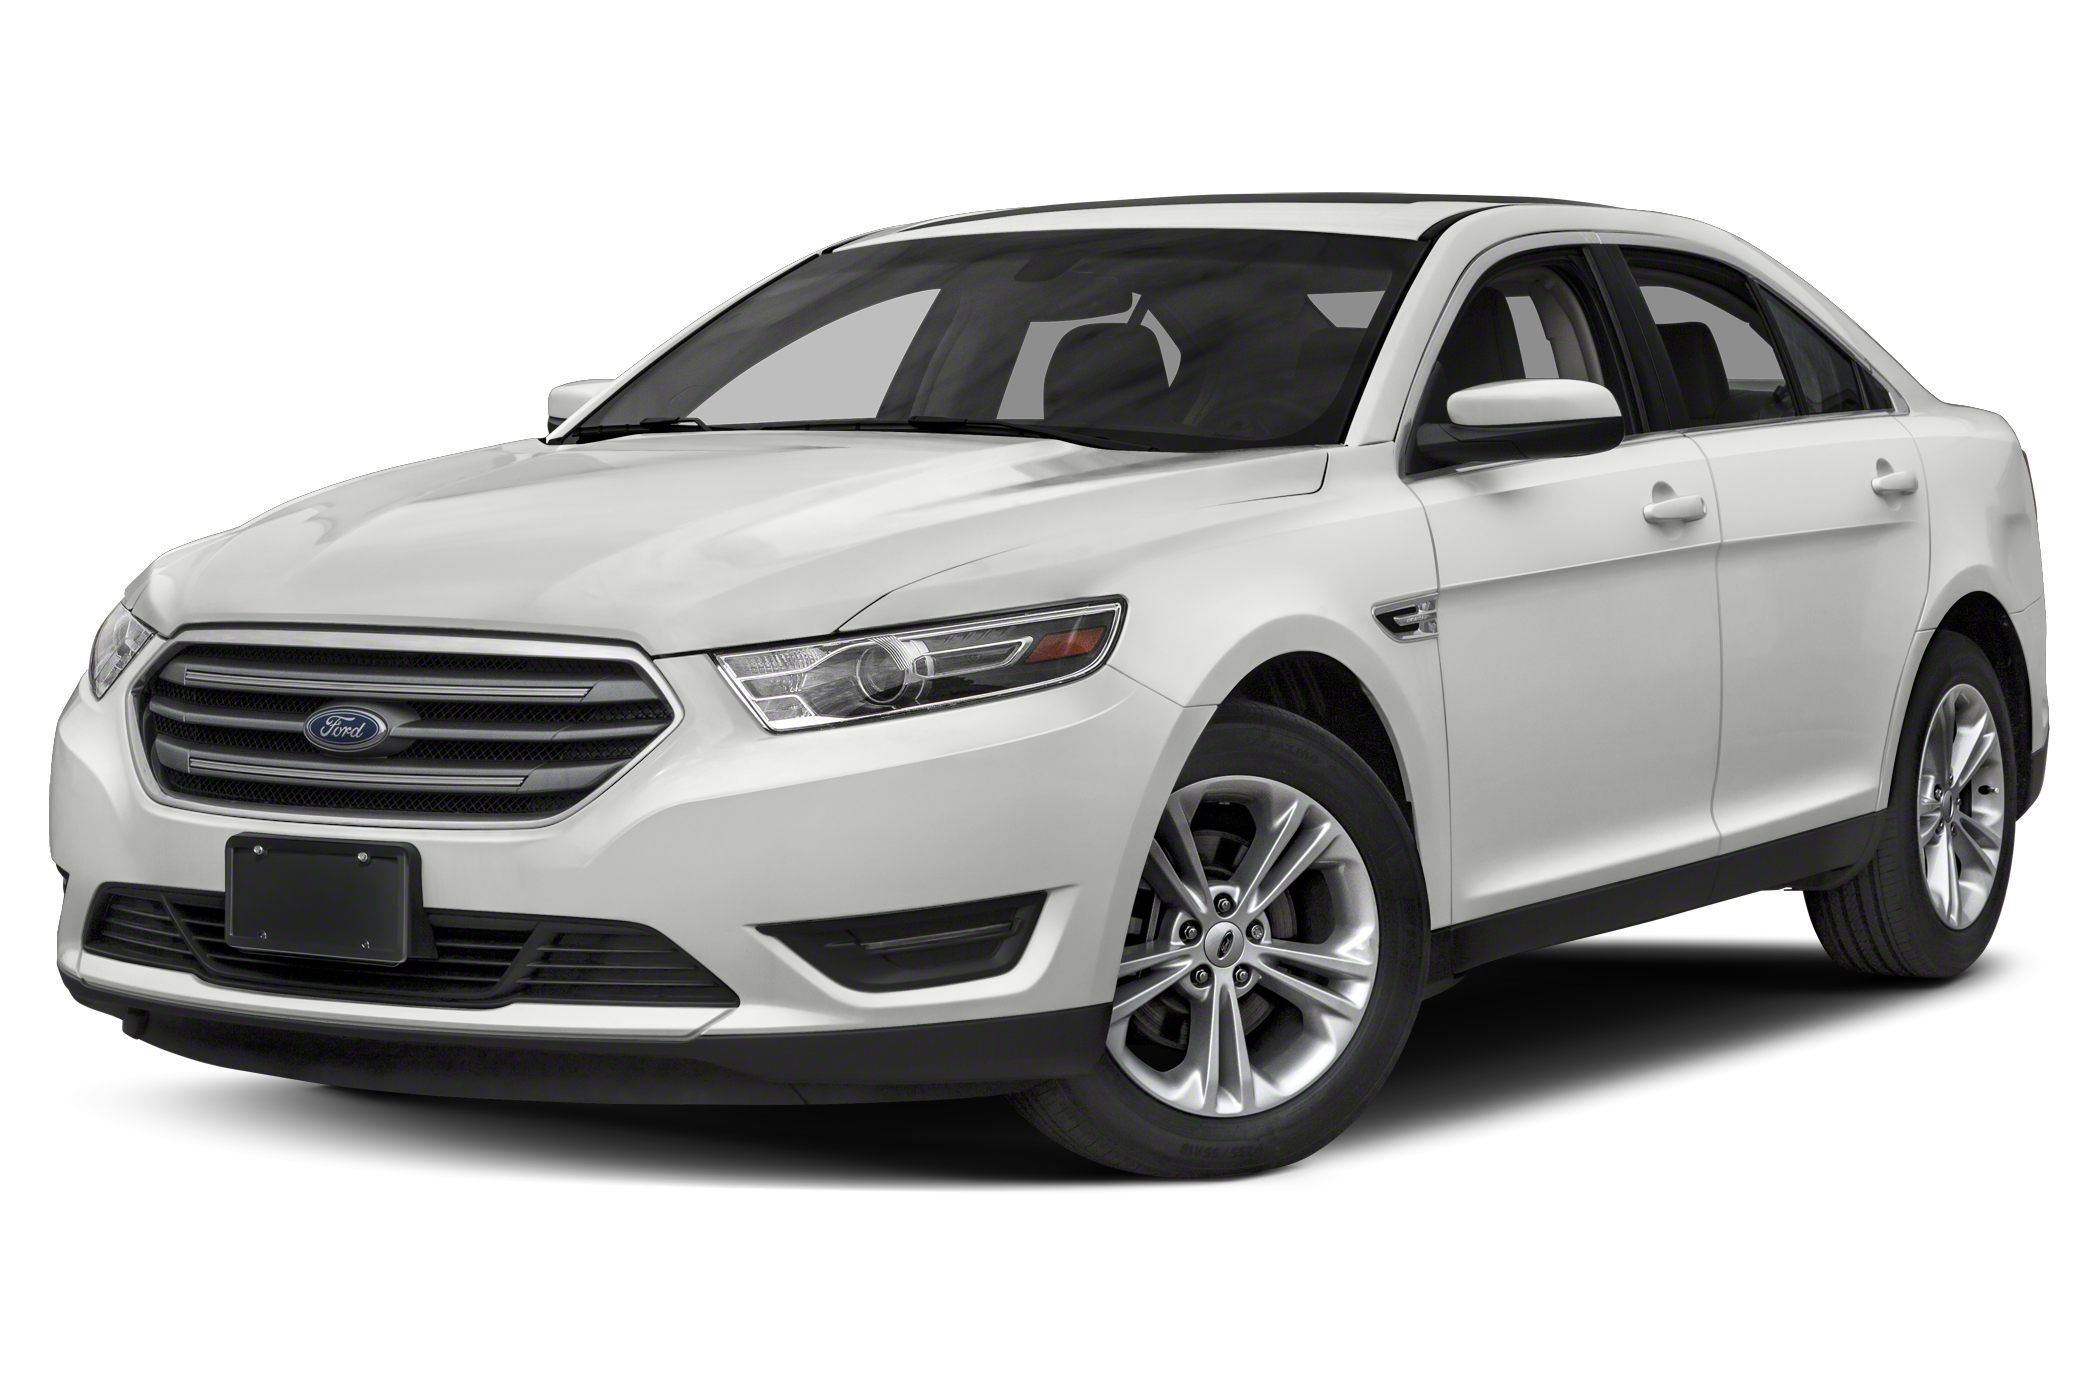 2016 Ford Taurus Specs and Prices